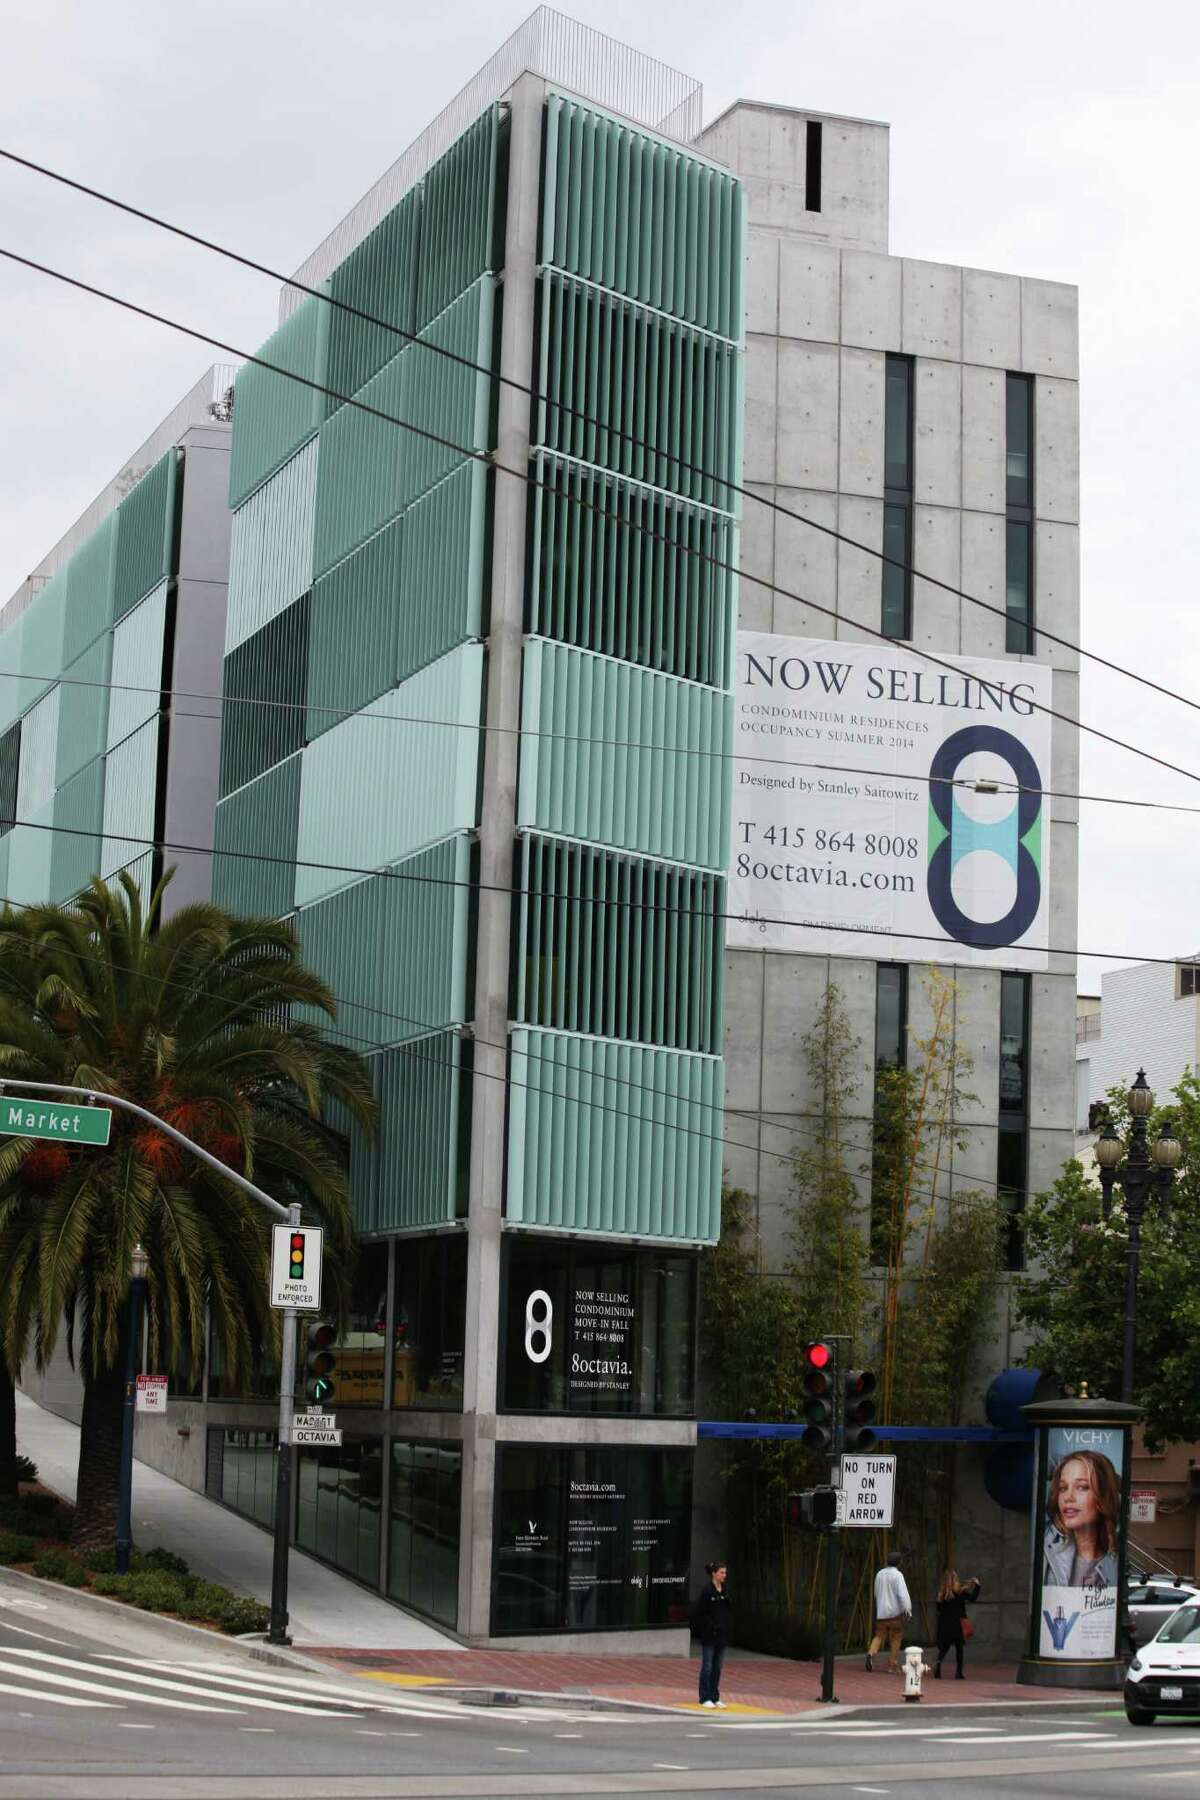 8 Octavia look is always shifting as residents change their louvers as they see fit.